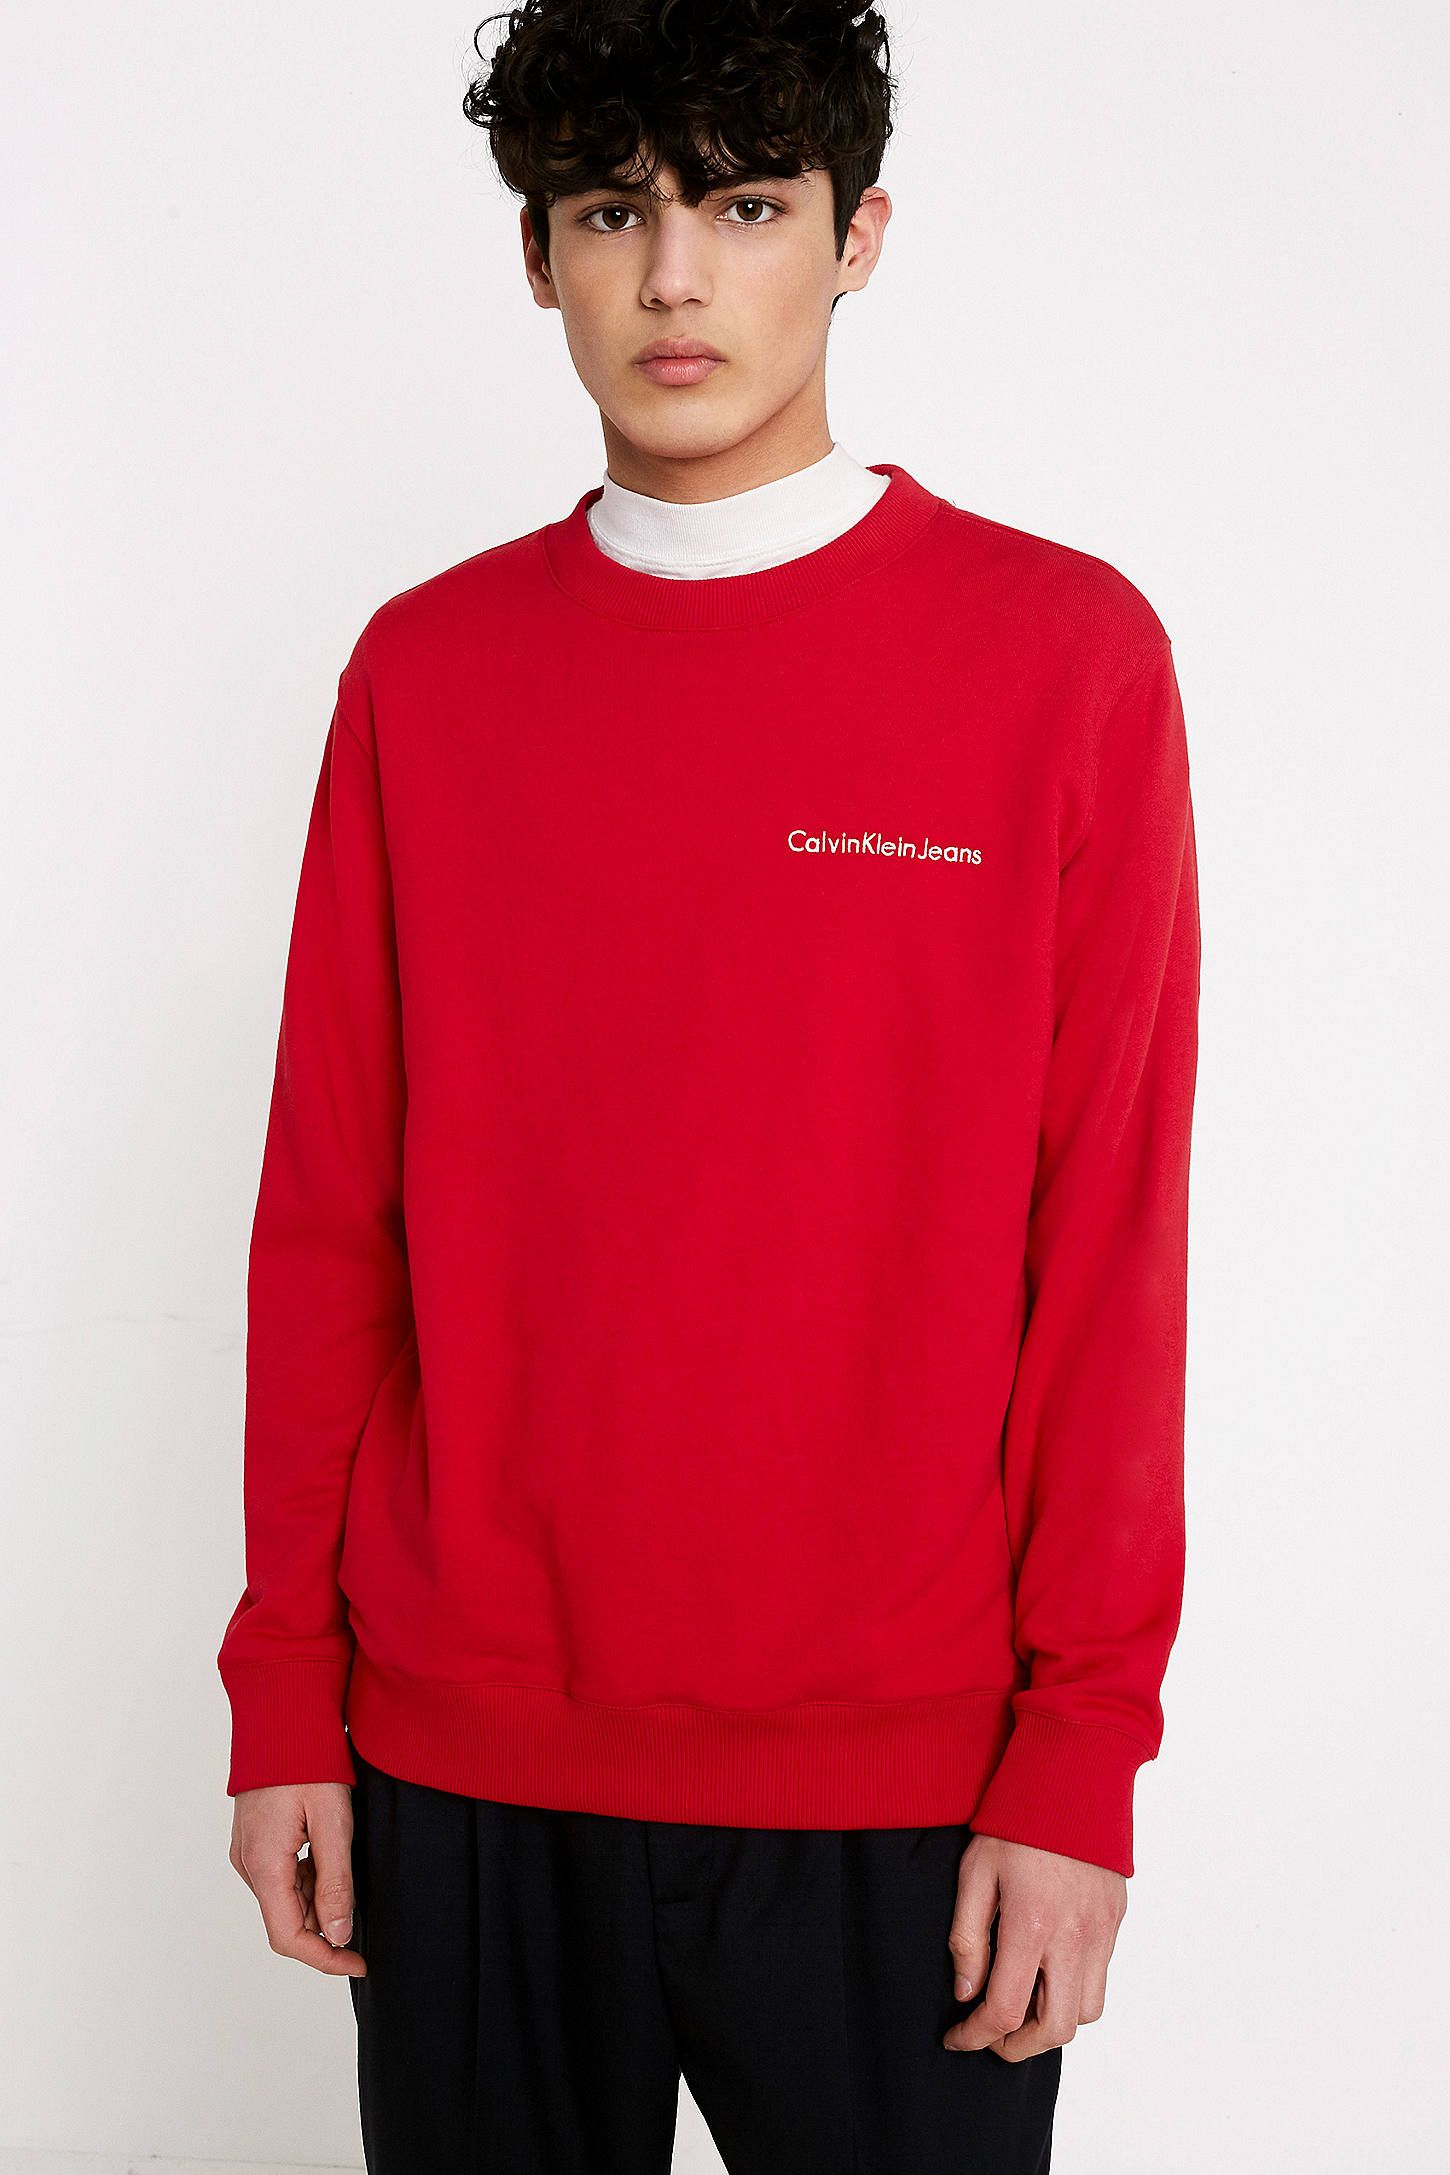 33f10de0 Shop Calvin Klein Jeans Horos Red Logo Sweatshirt at Urban Outfitters  today. We carry all the latest styles, colours and brands for you to choose  from right ...